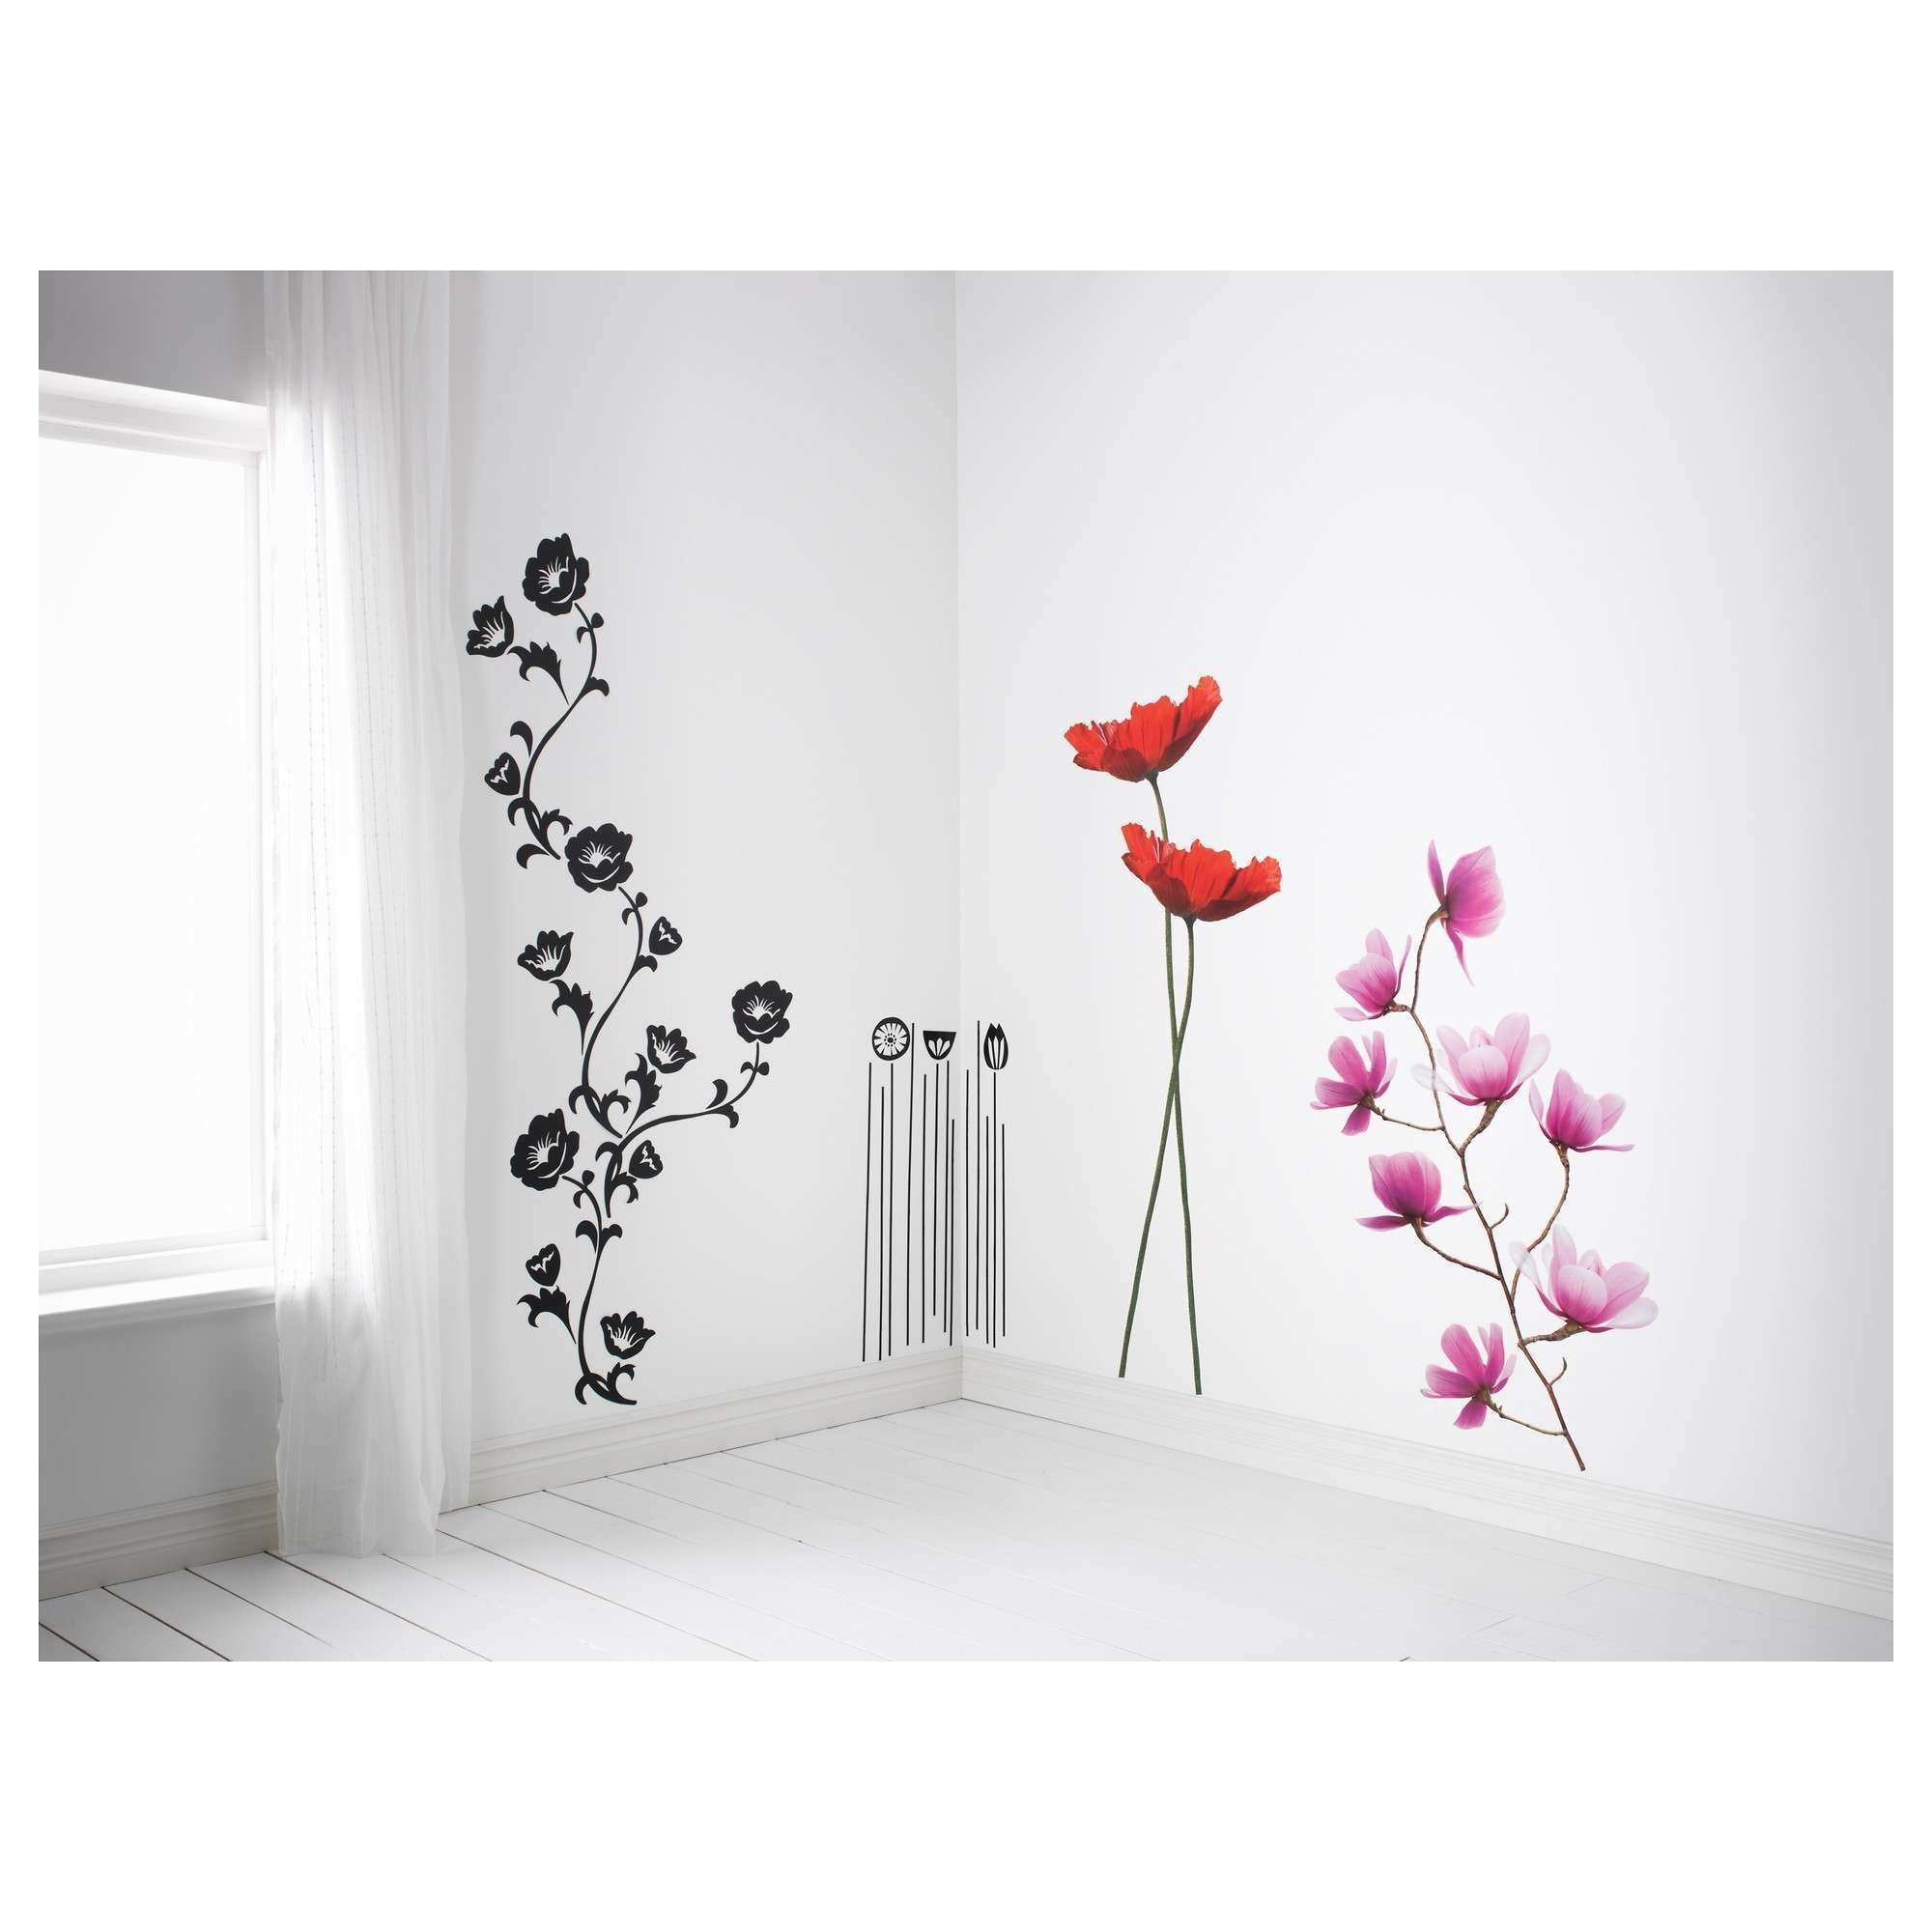 Ikea Wall Art Unique Ikea Wall Decals | Wall Art Ideas in Ikea Wall Art (Image 11 of 20)